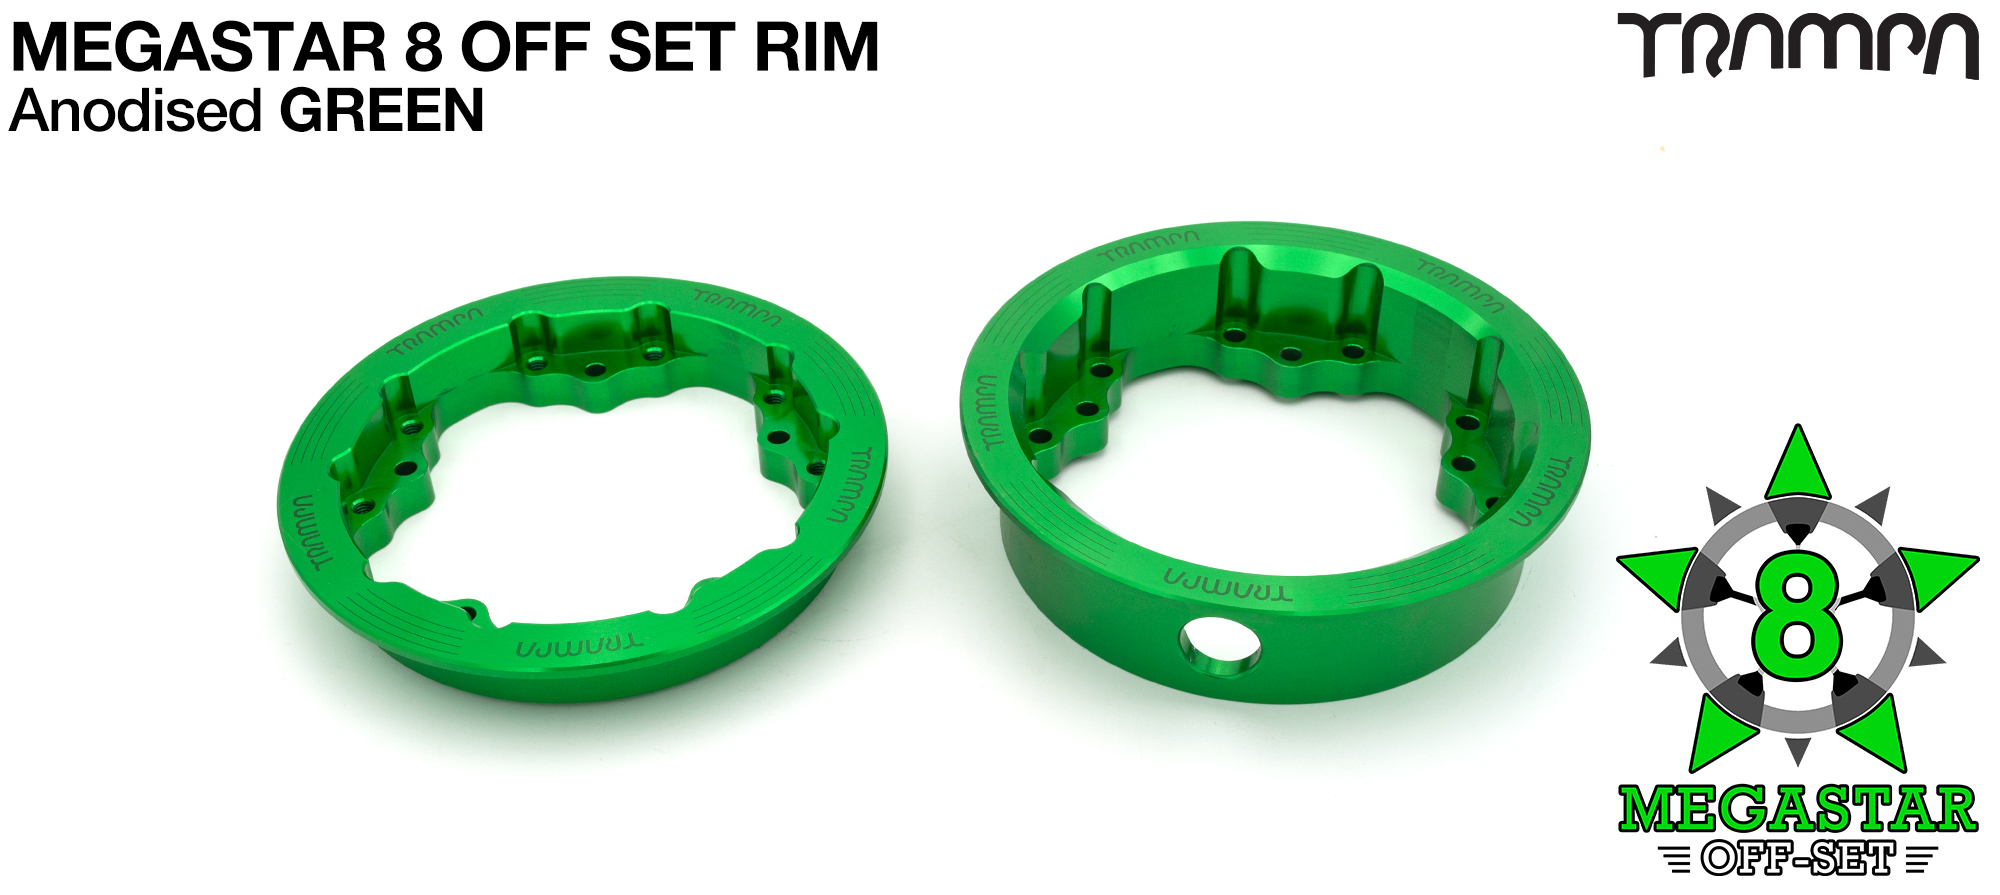 CENTER-SET 8 inch MEGASTAR Rims - GREEN